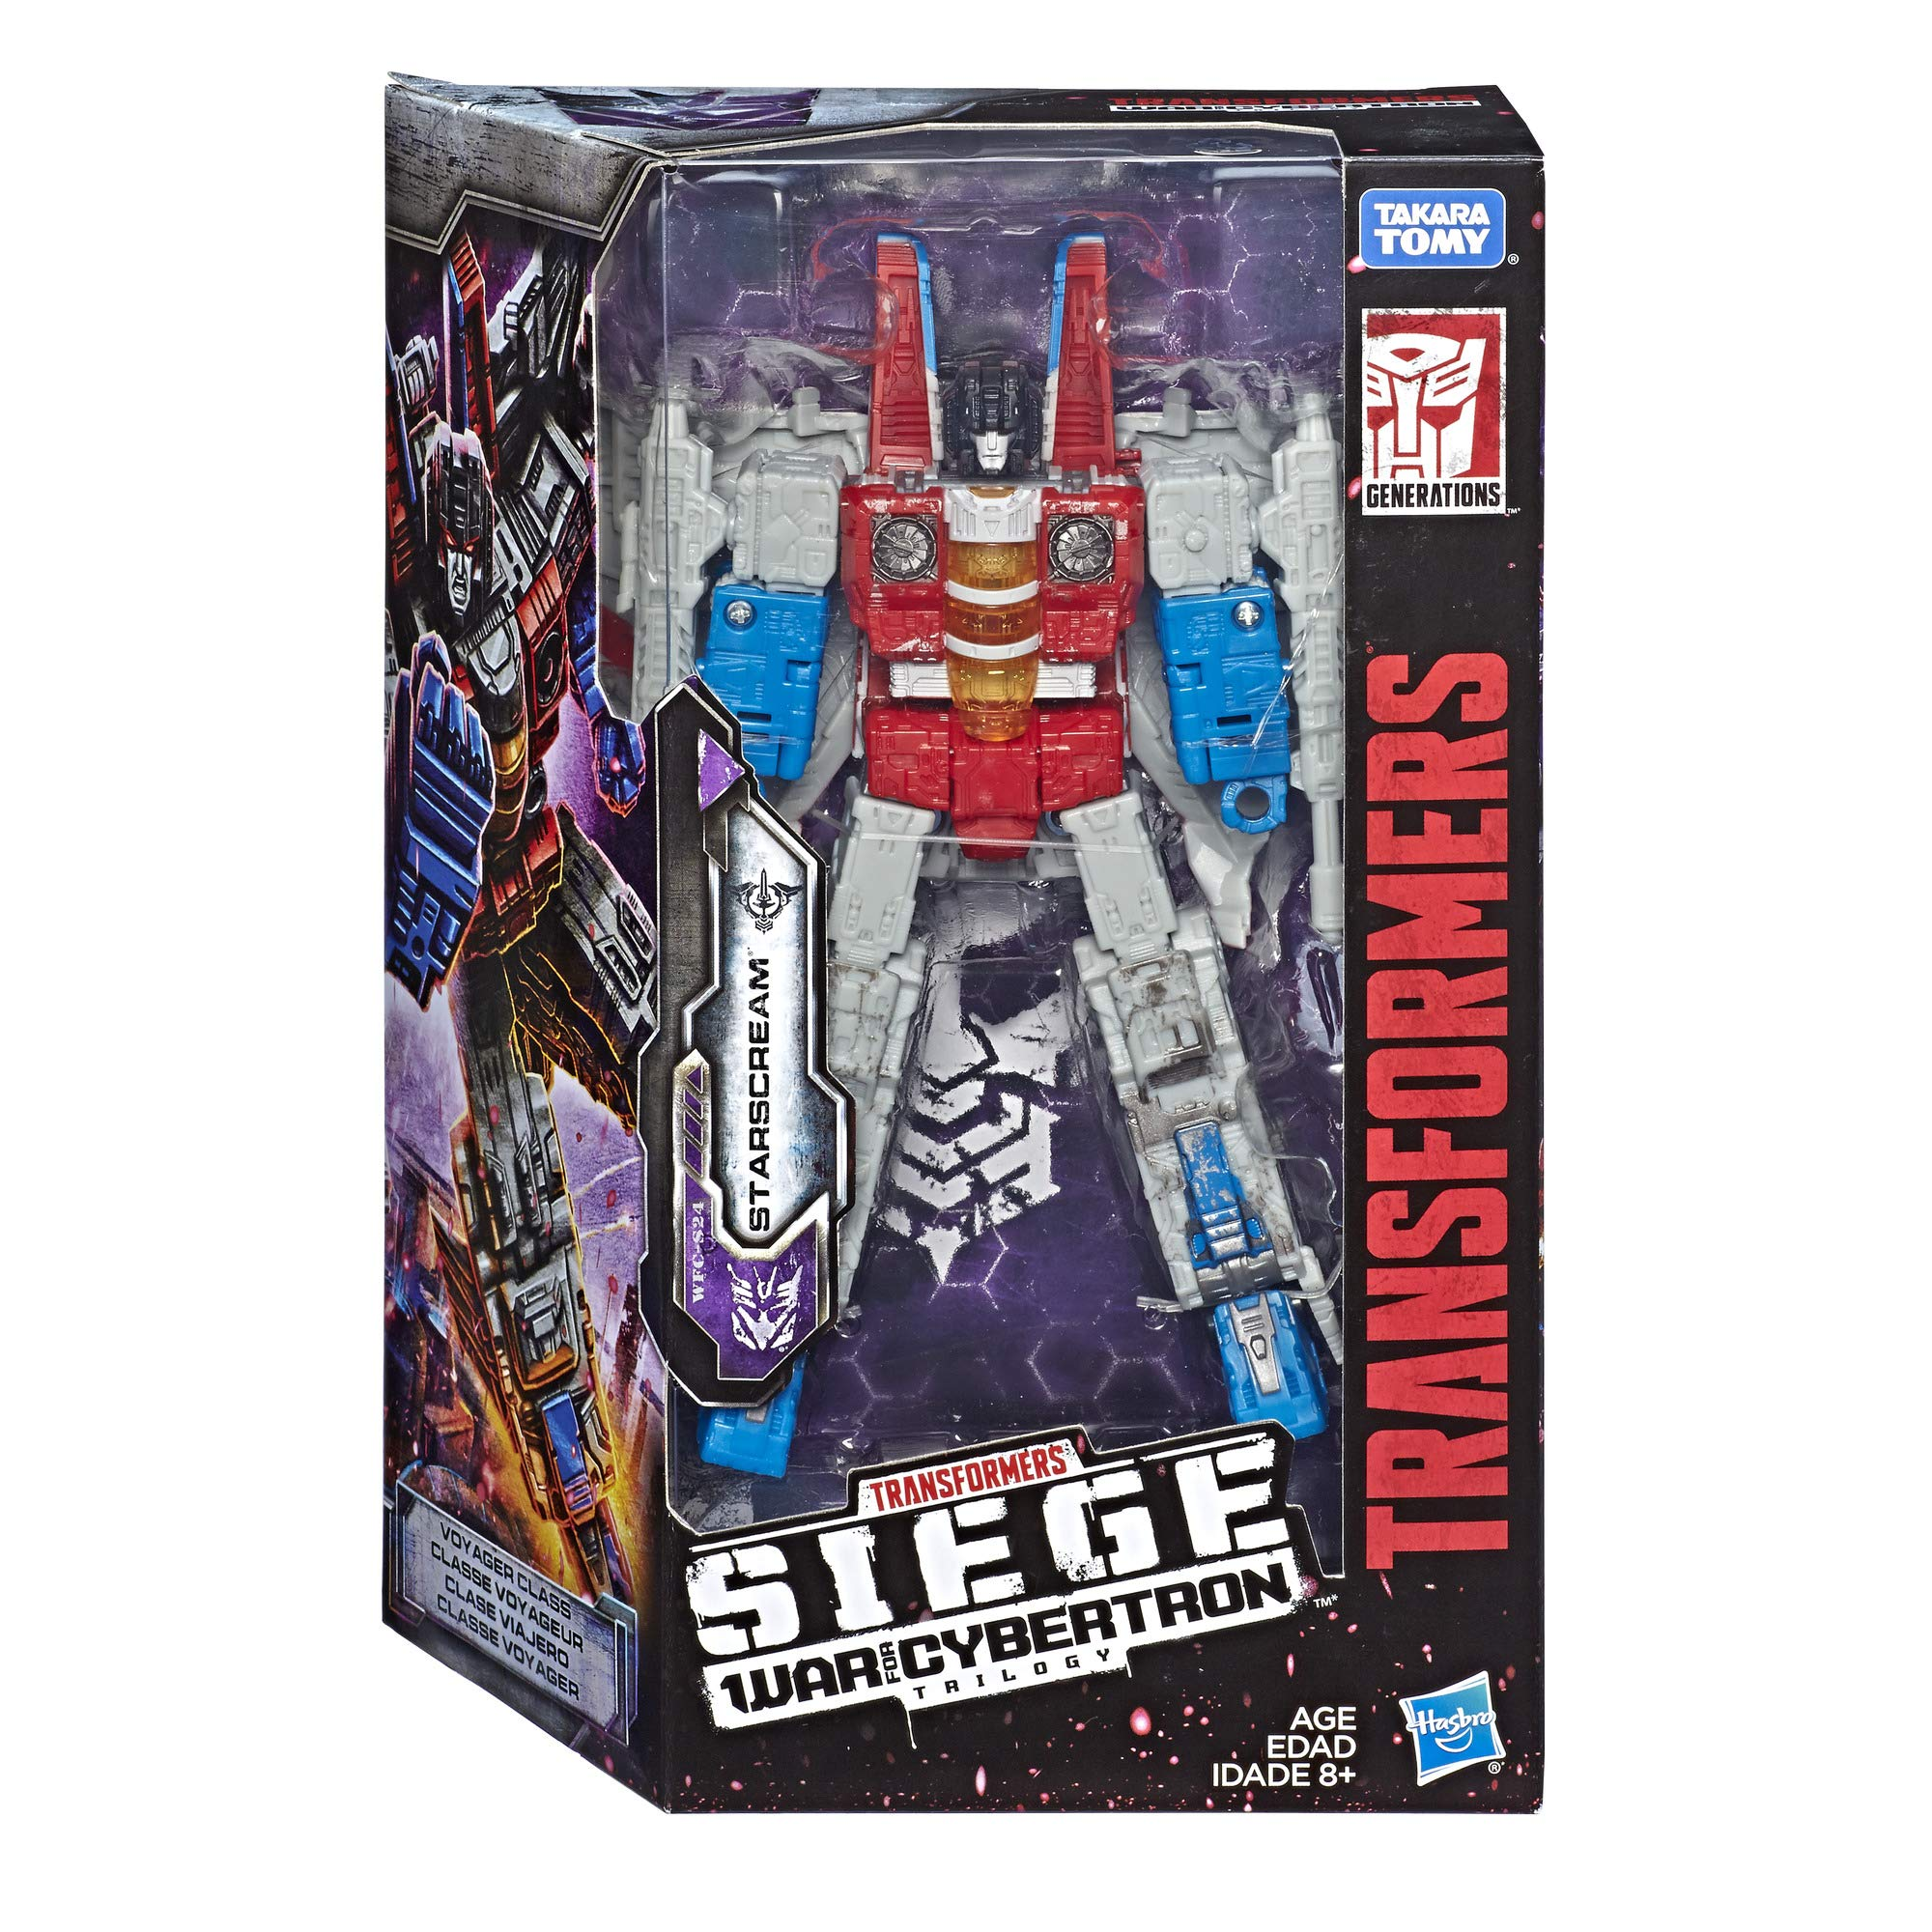 Transformers Toys Generations War for Cybertron Voyager Wfc-S24 Starscream Action Figure - Siege Chapter - Adults & Kids Ages 8 & Up, 7'' by Transformers (Image #2)